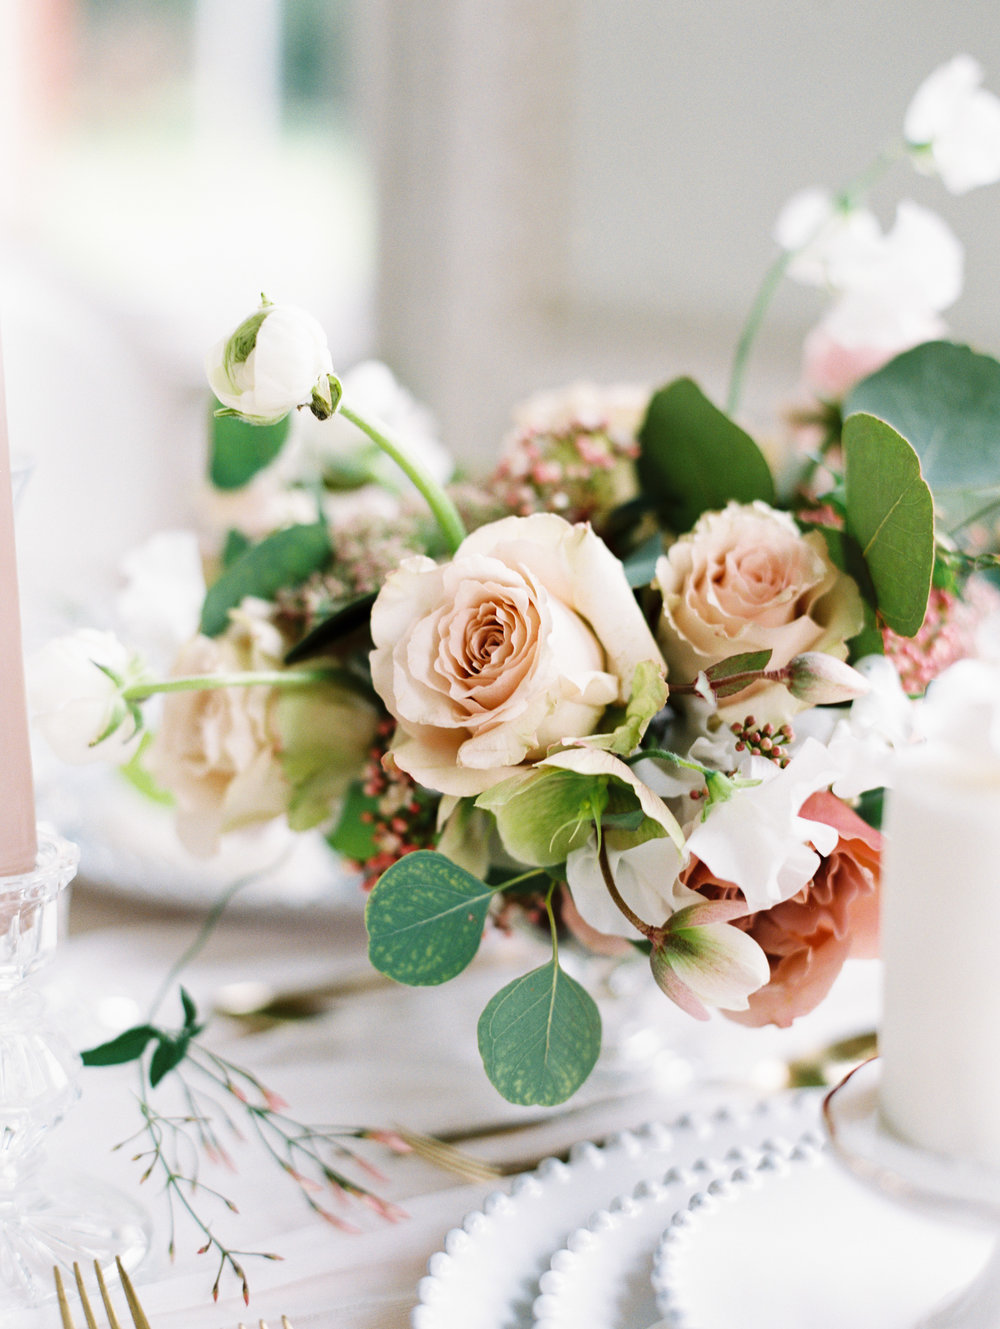 The Timeless Stylist-Elegant and Romantic Wedding Design and Styling-Timeless Wedding Tablescape